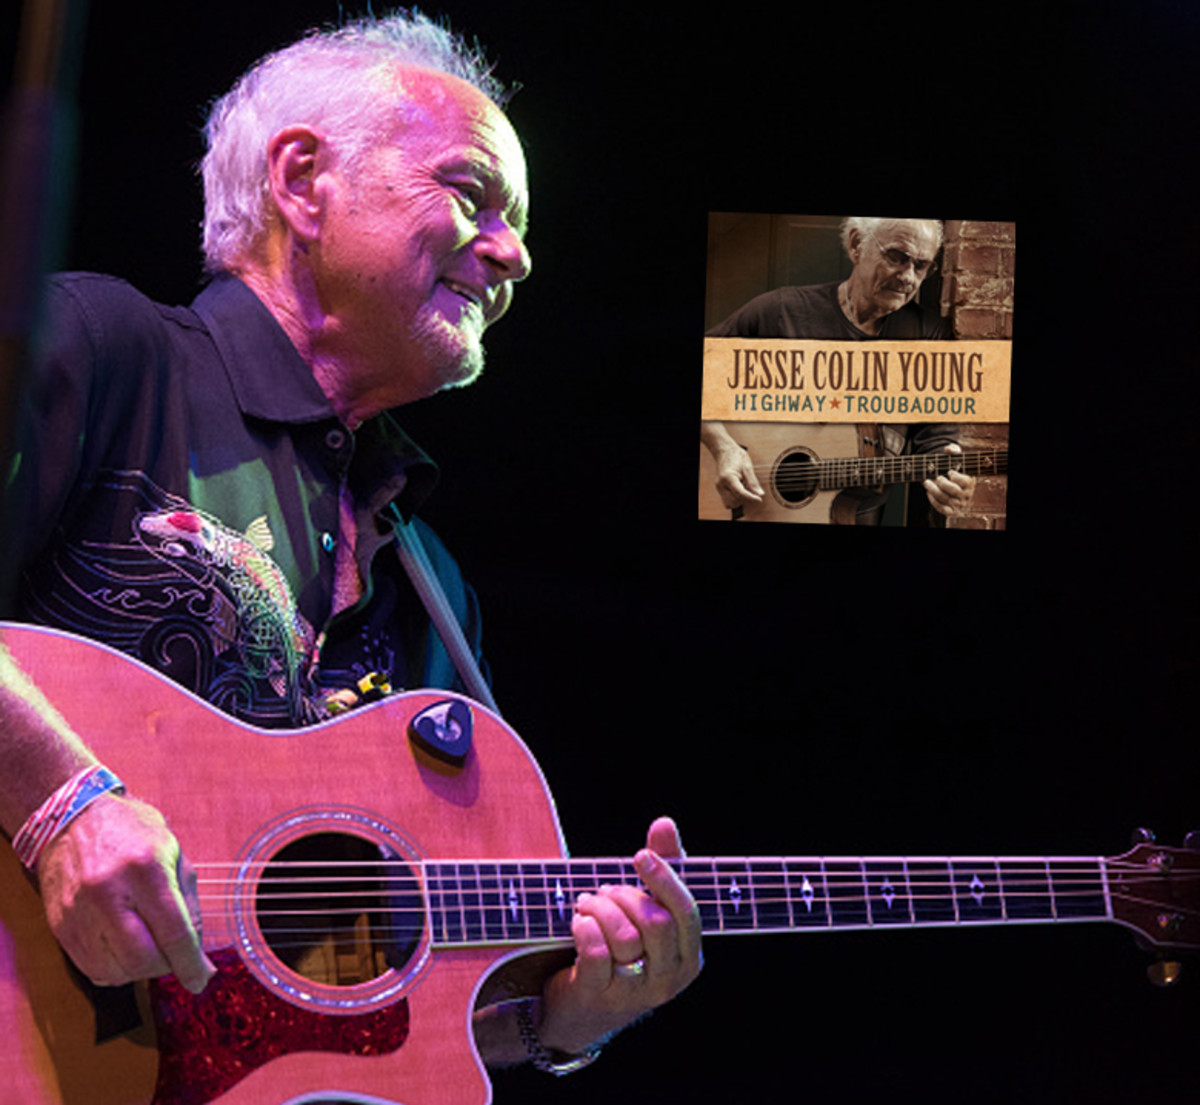 """Jesse Colin Young performs during the """"Music & Revolution: Greenwich Village in the 1960's Concert"""" at SummerStage, Rumsey Playfield, Central Park on August 12, 2018, in New York City. Photo byDebra L Rothenberg/Getty Images.Above left, Young's latest album Highway Troubadour."""